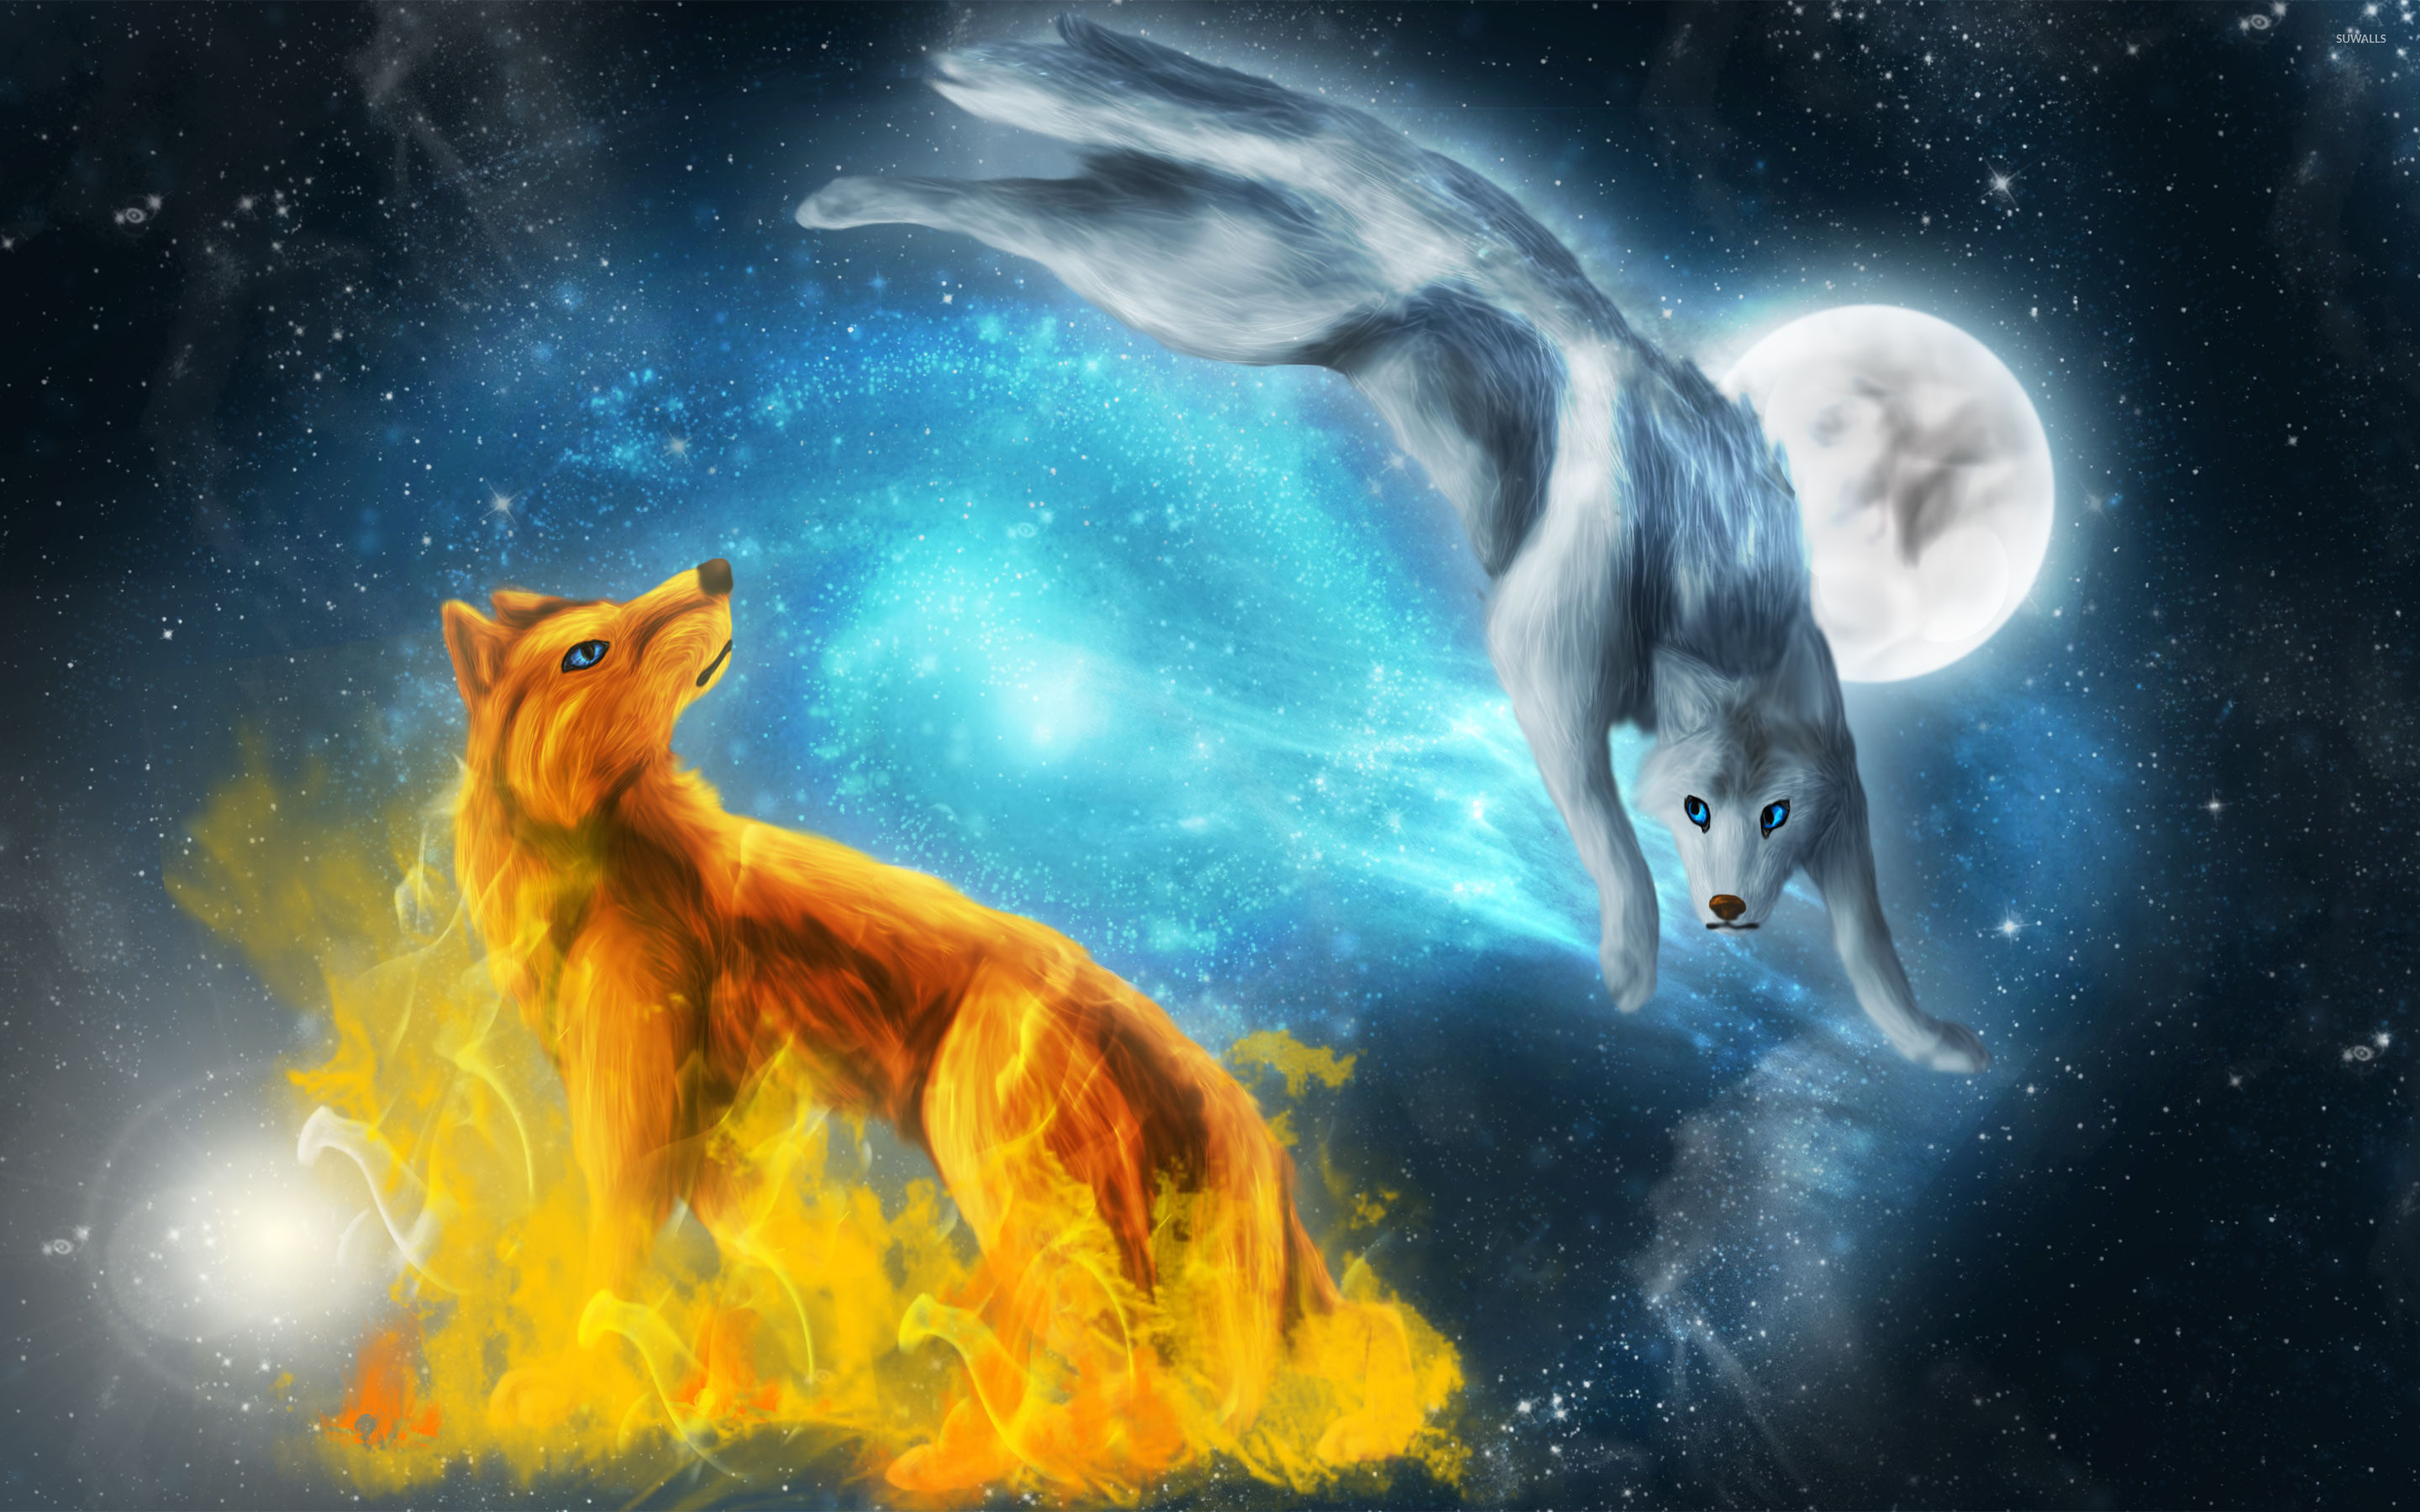 Fire and ice wolves wallpaper – Fantasy wallpapers – #24381